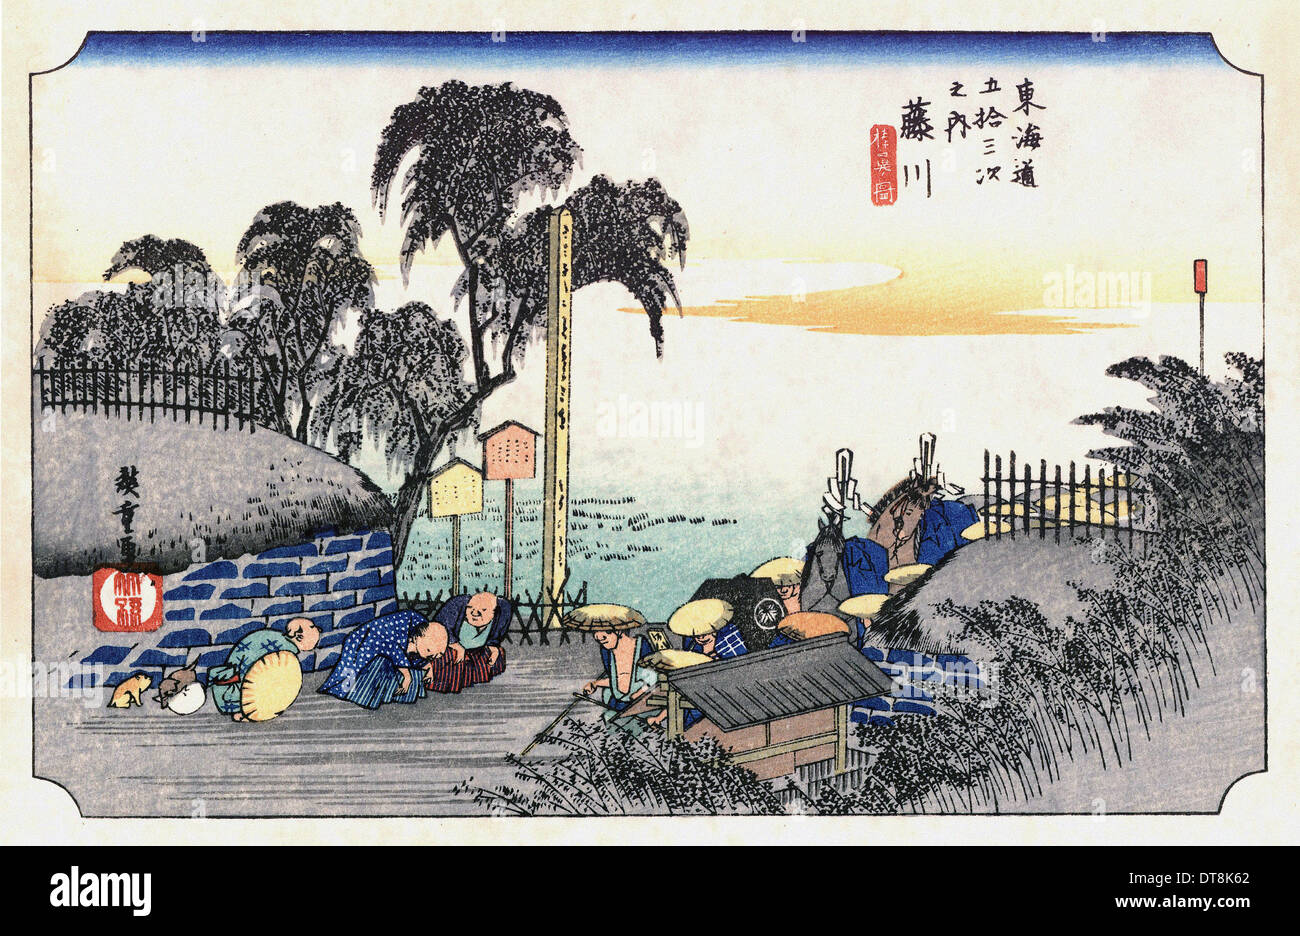 utagawa hiroshige 歌川 広重 the 53 stations of the tokaido